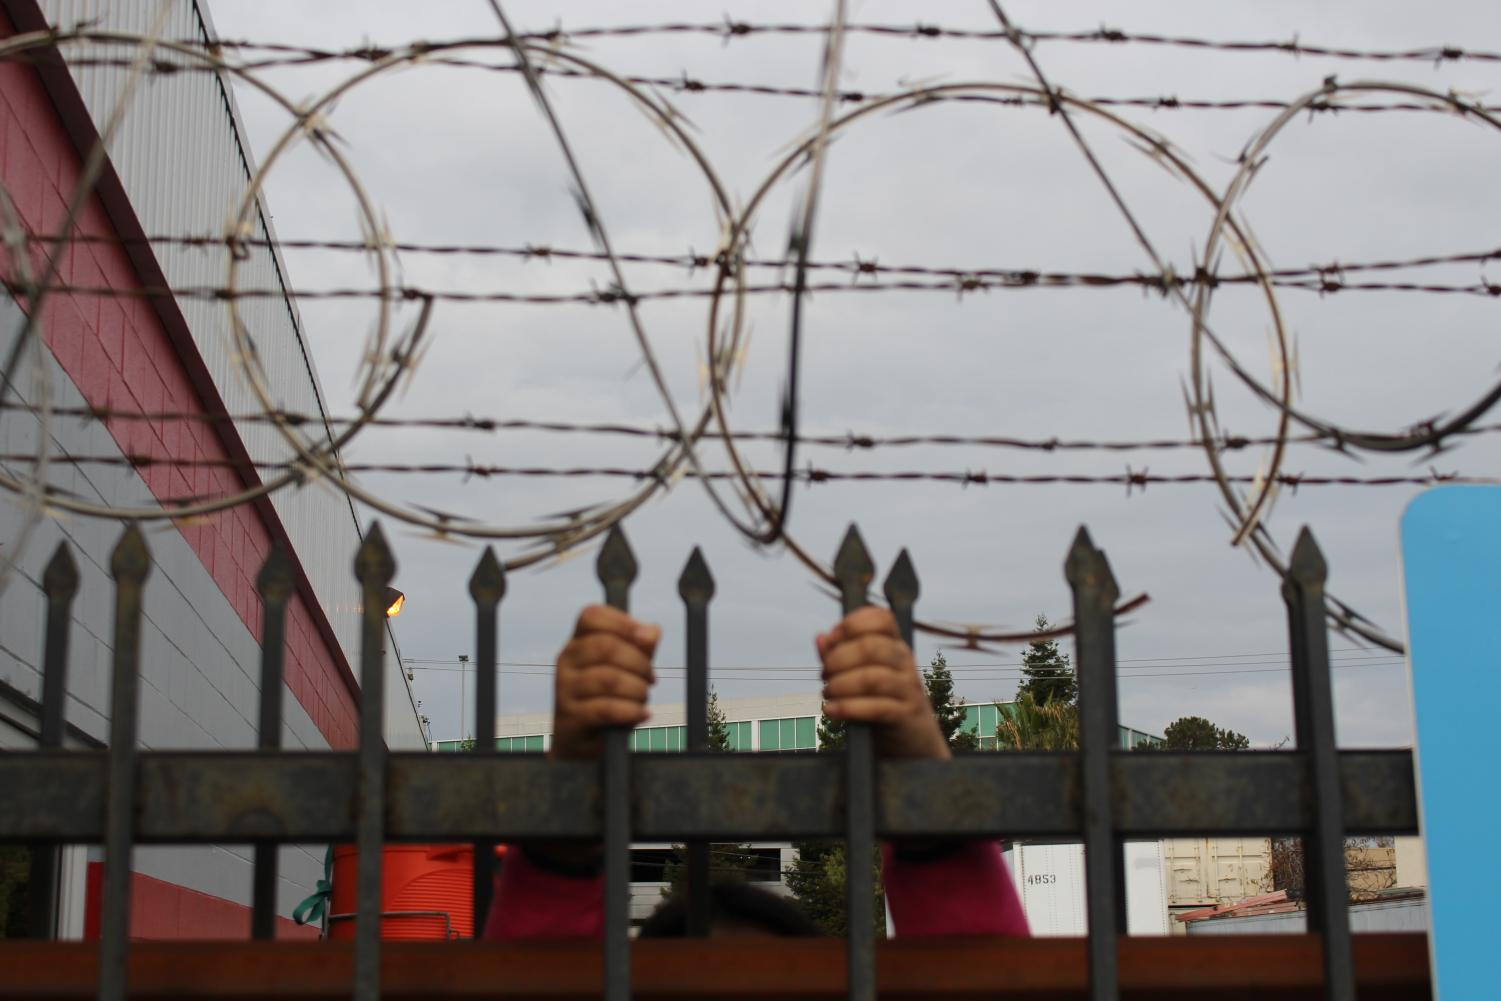 The border has approximately 700 miles of barbed wire, chain link, post-and-rail and wire mesh fencing.